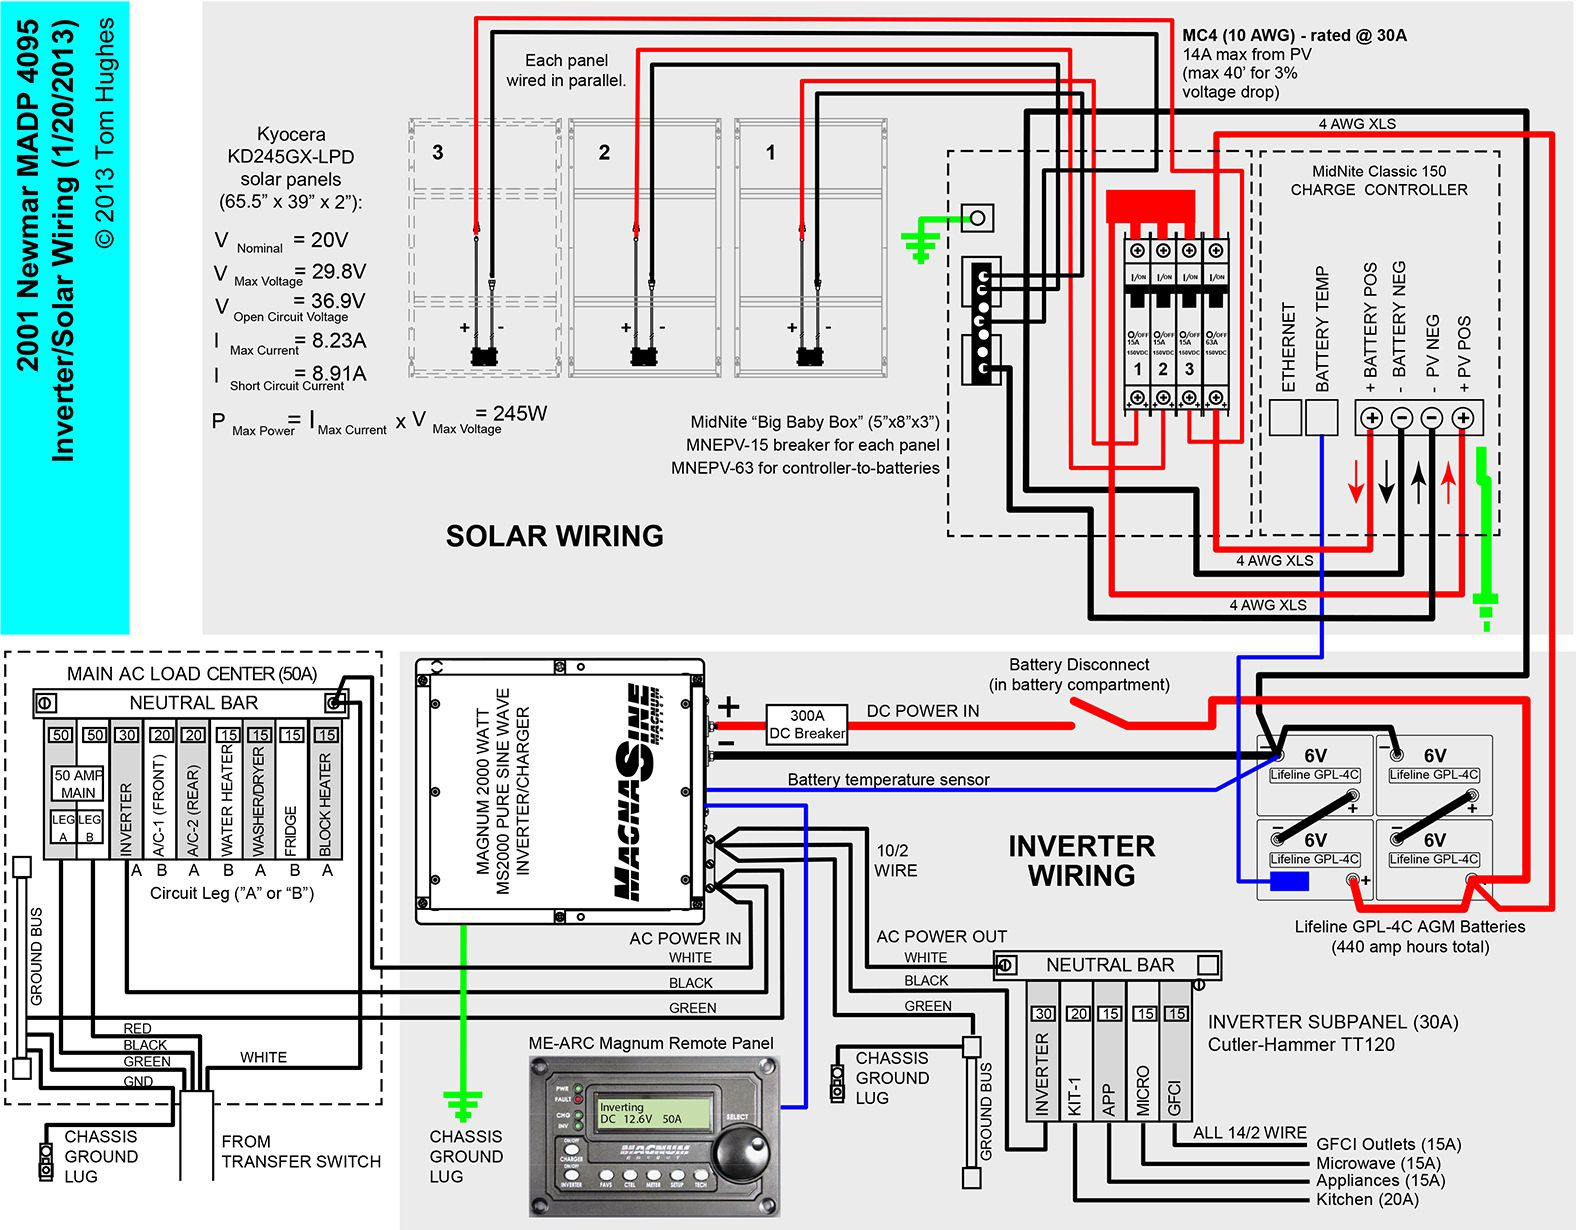 rv inverter wiring diagram rv inverter wiring diagram wiring rv inverter wiring diagram rv inverter wiring diagram